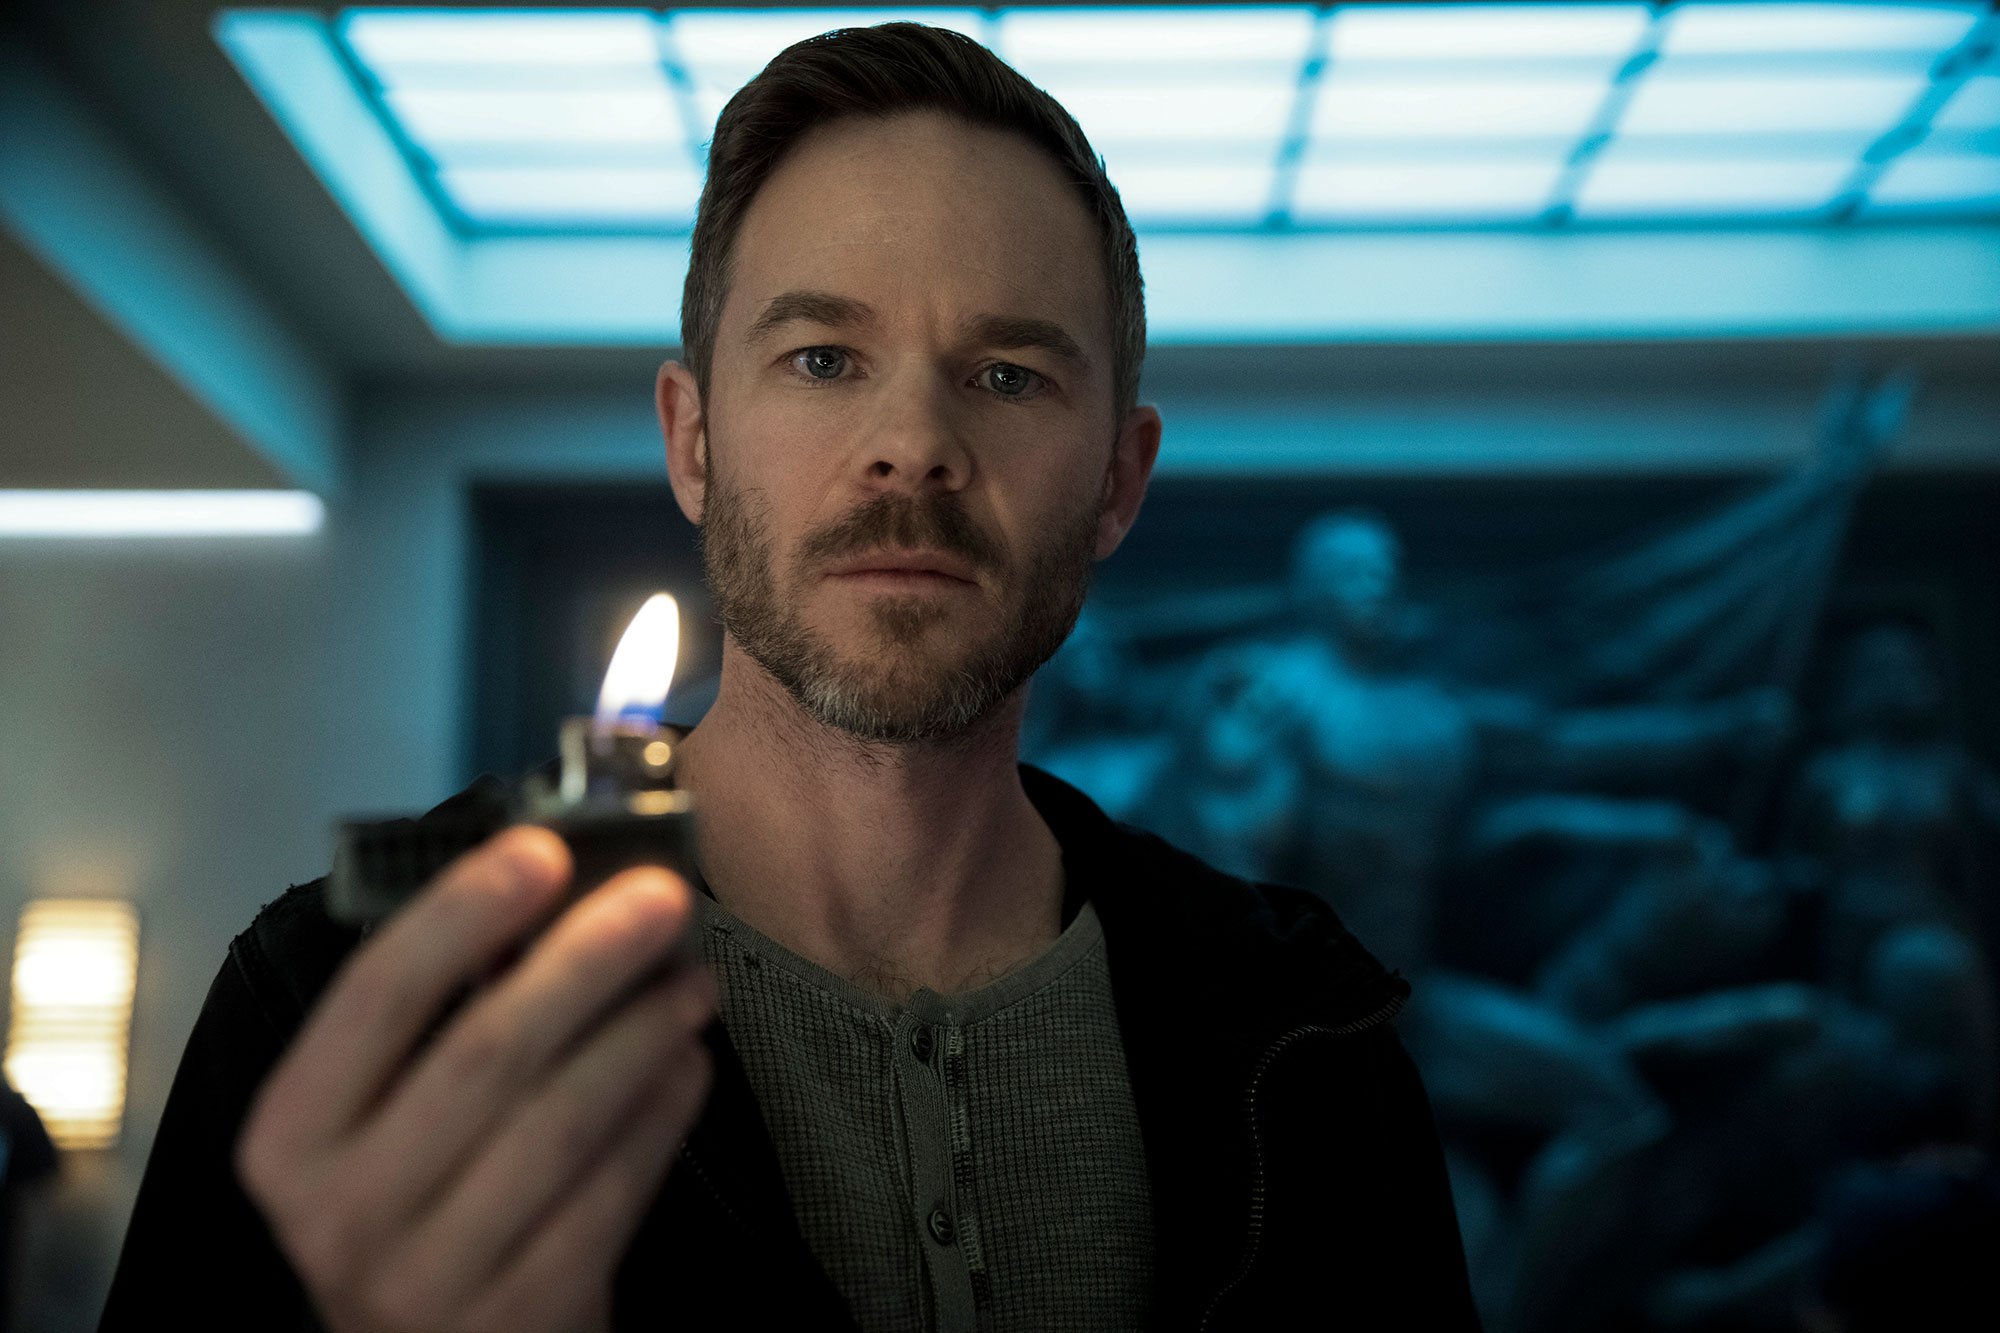 Fotografía de Shawn Ashmore como Lamplighter en The Boys